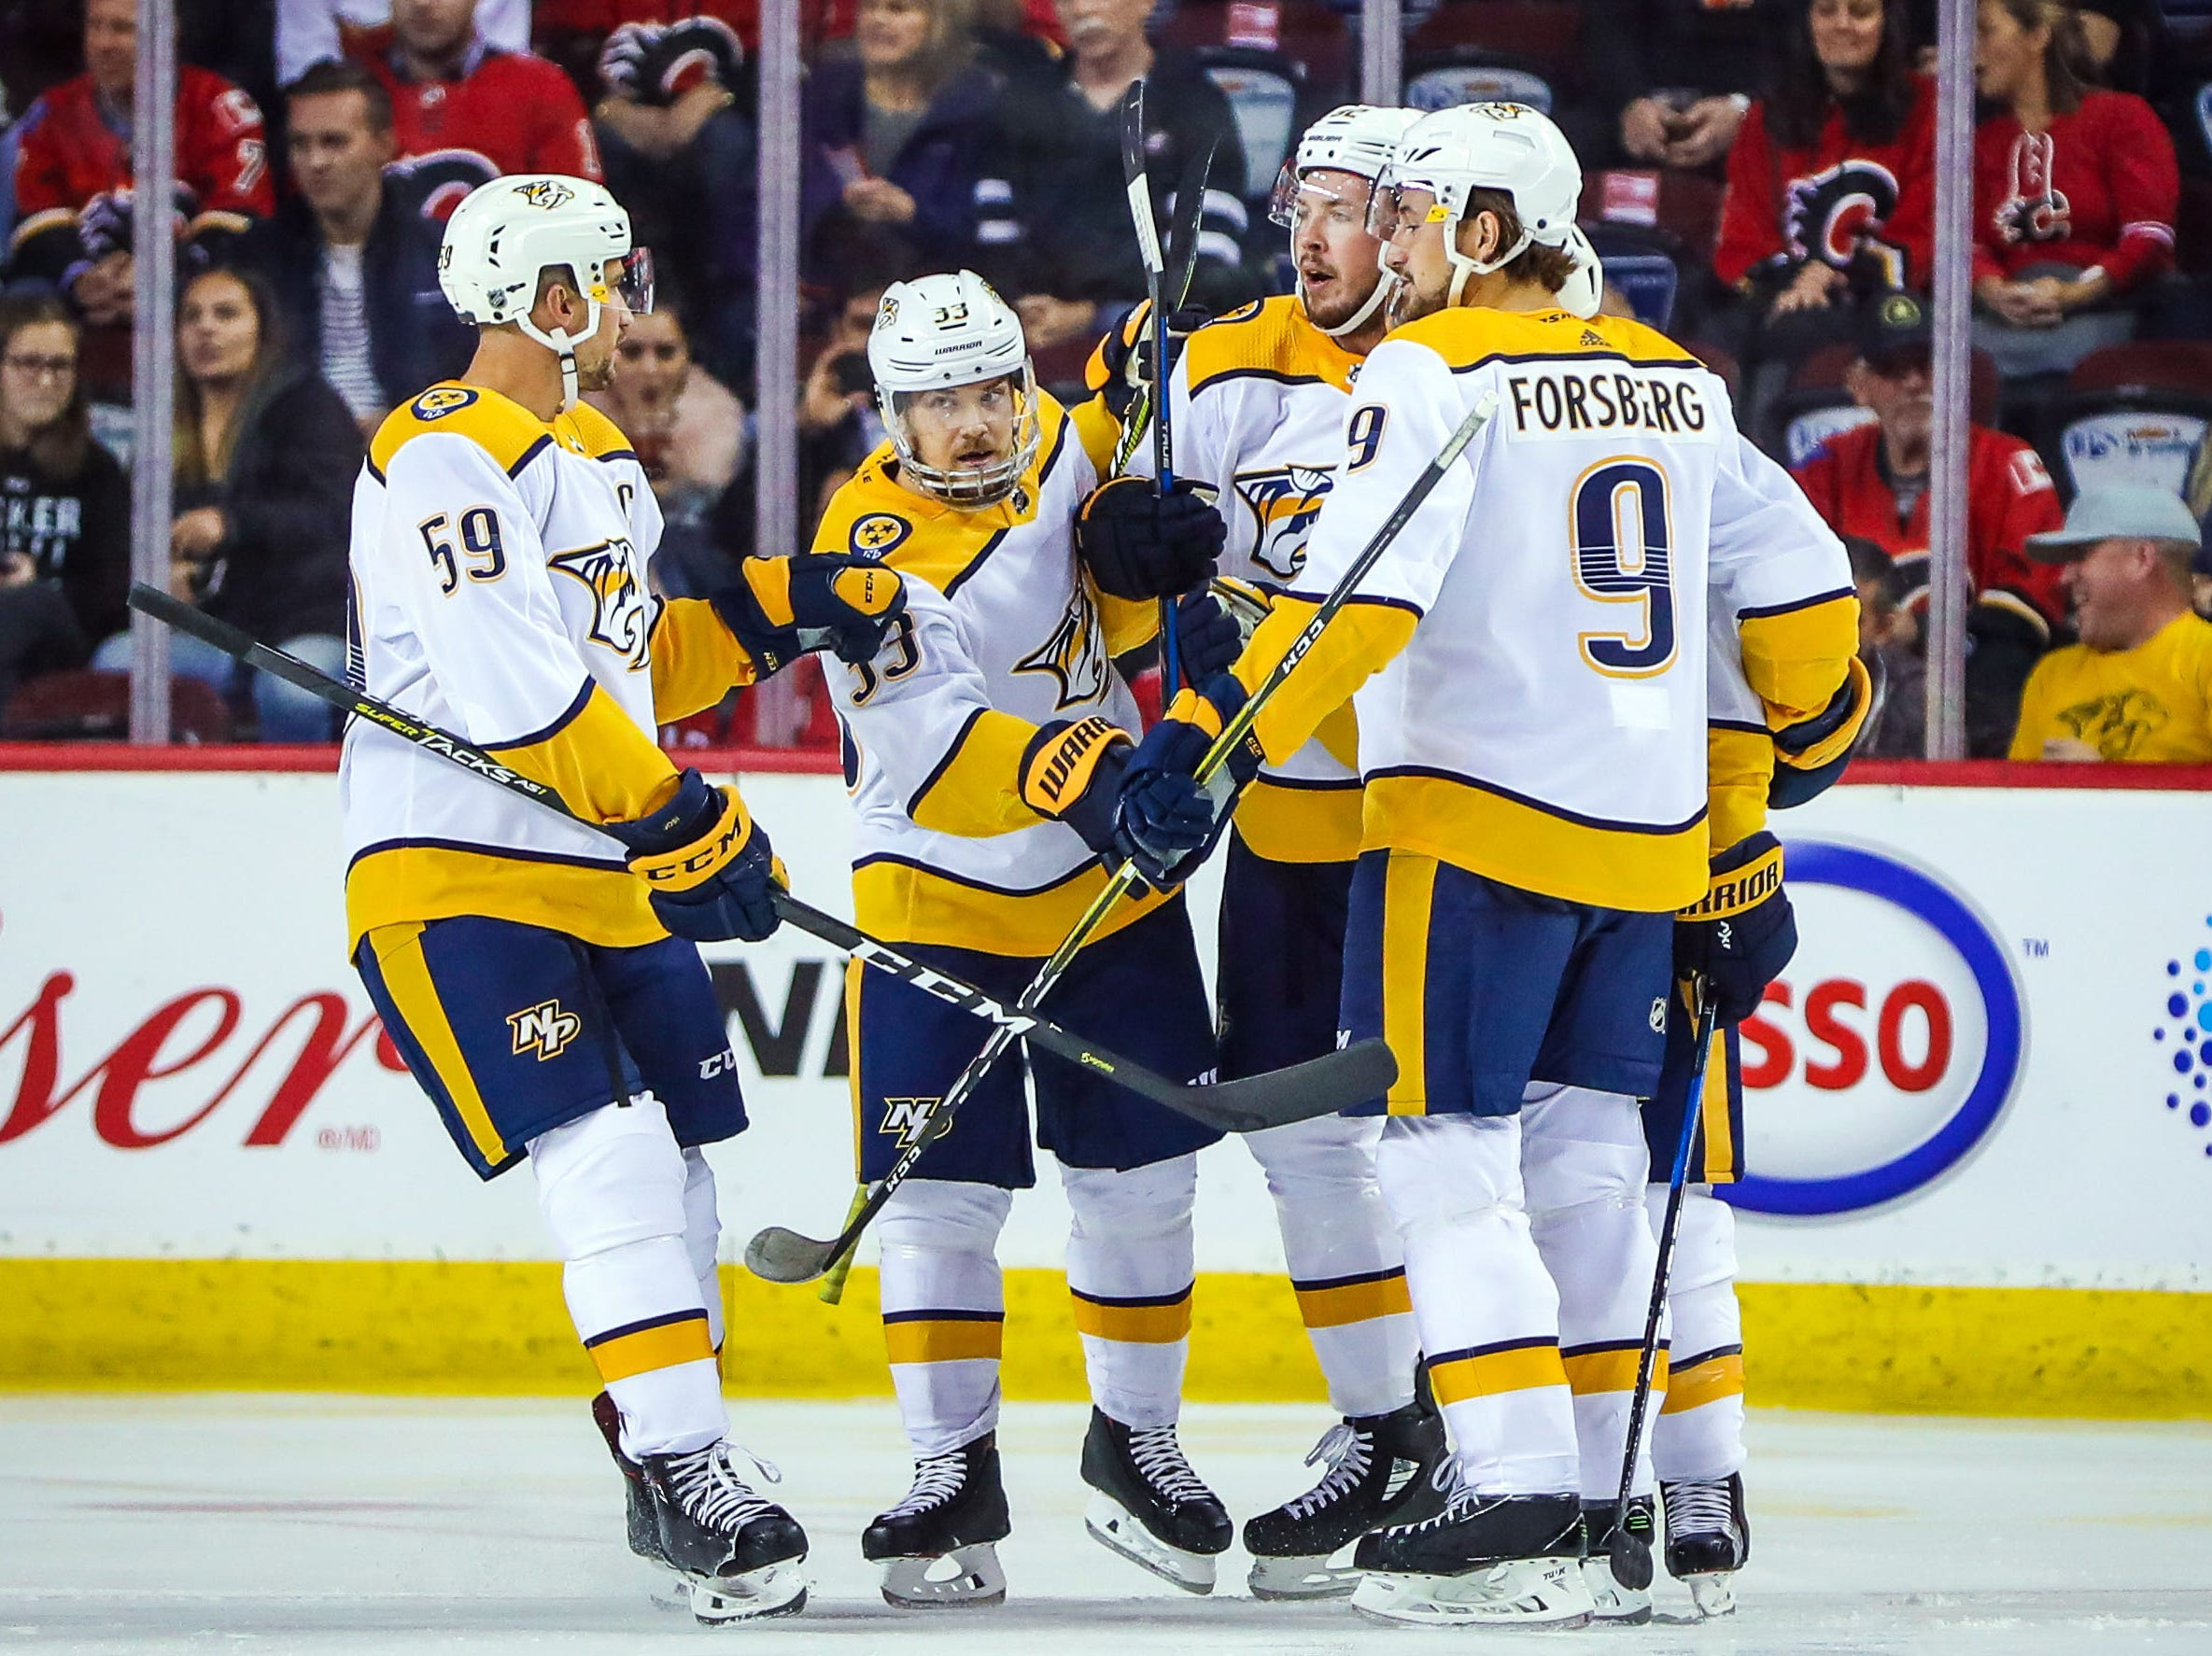 Oct 19: Predators 5, Flames 3 -- Nashville Predators center Ryan Johansen (92) celebrates his goal with teammates against the Calgary Flames during the first period at Scotiabank Saddledome.